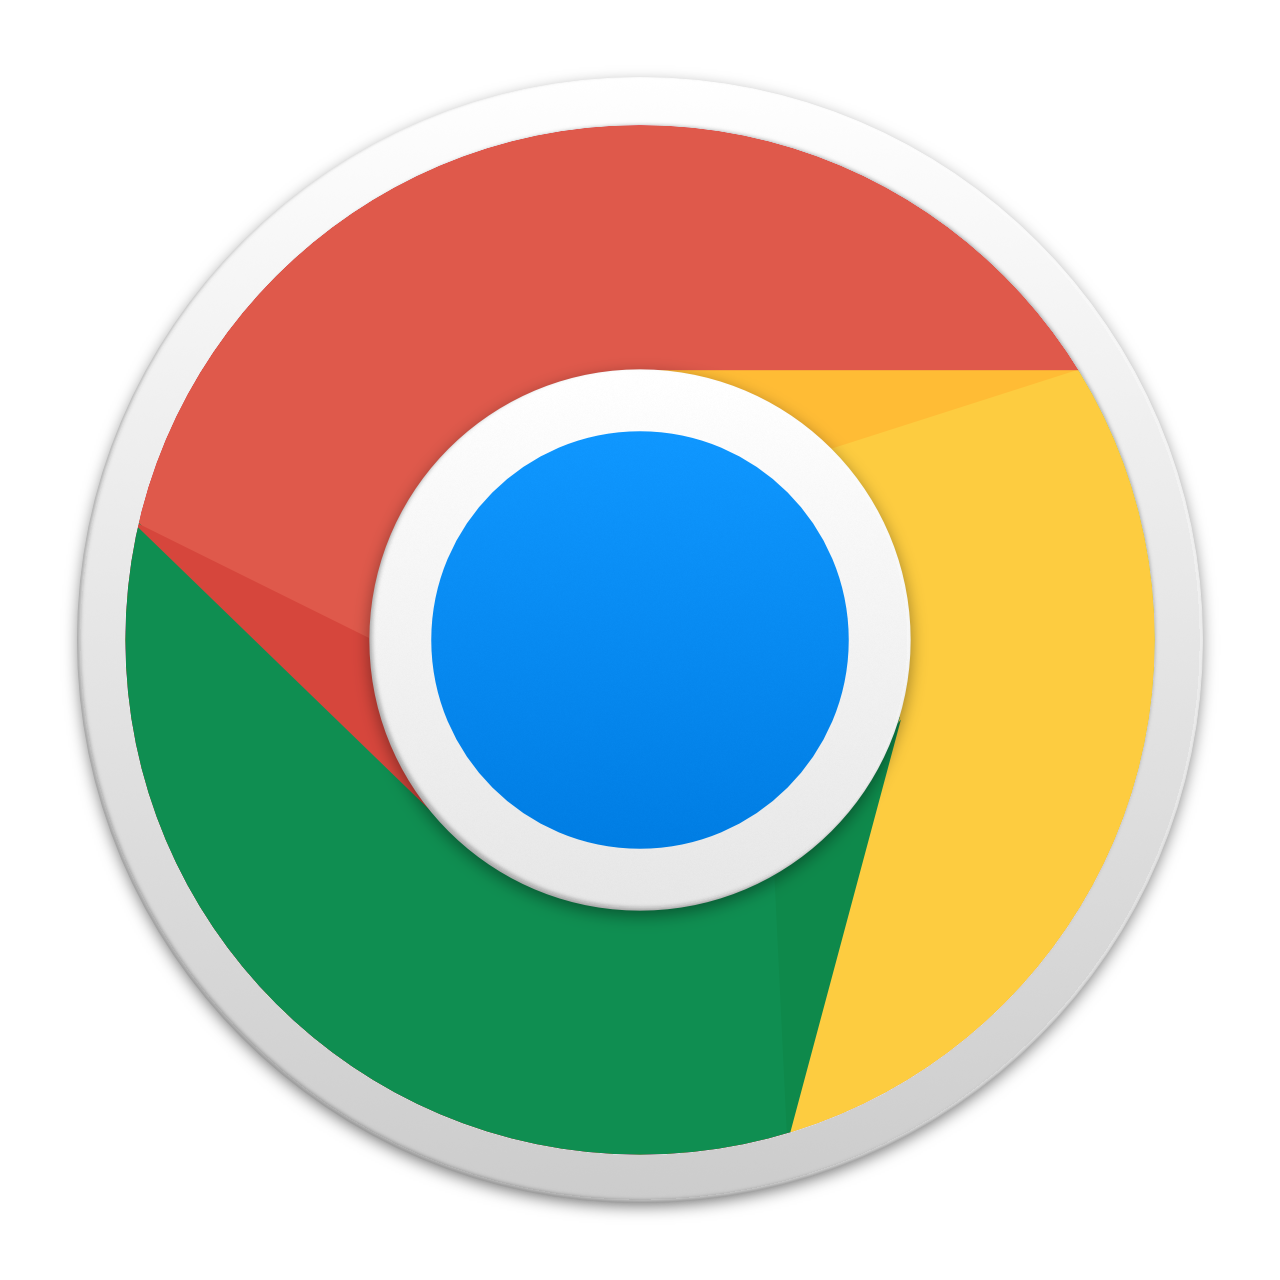 new chrome logo png images #4814